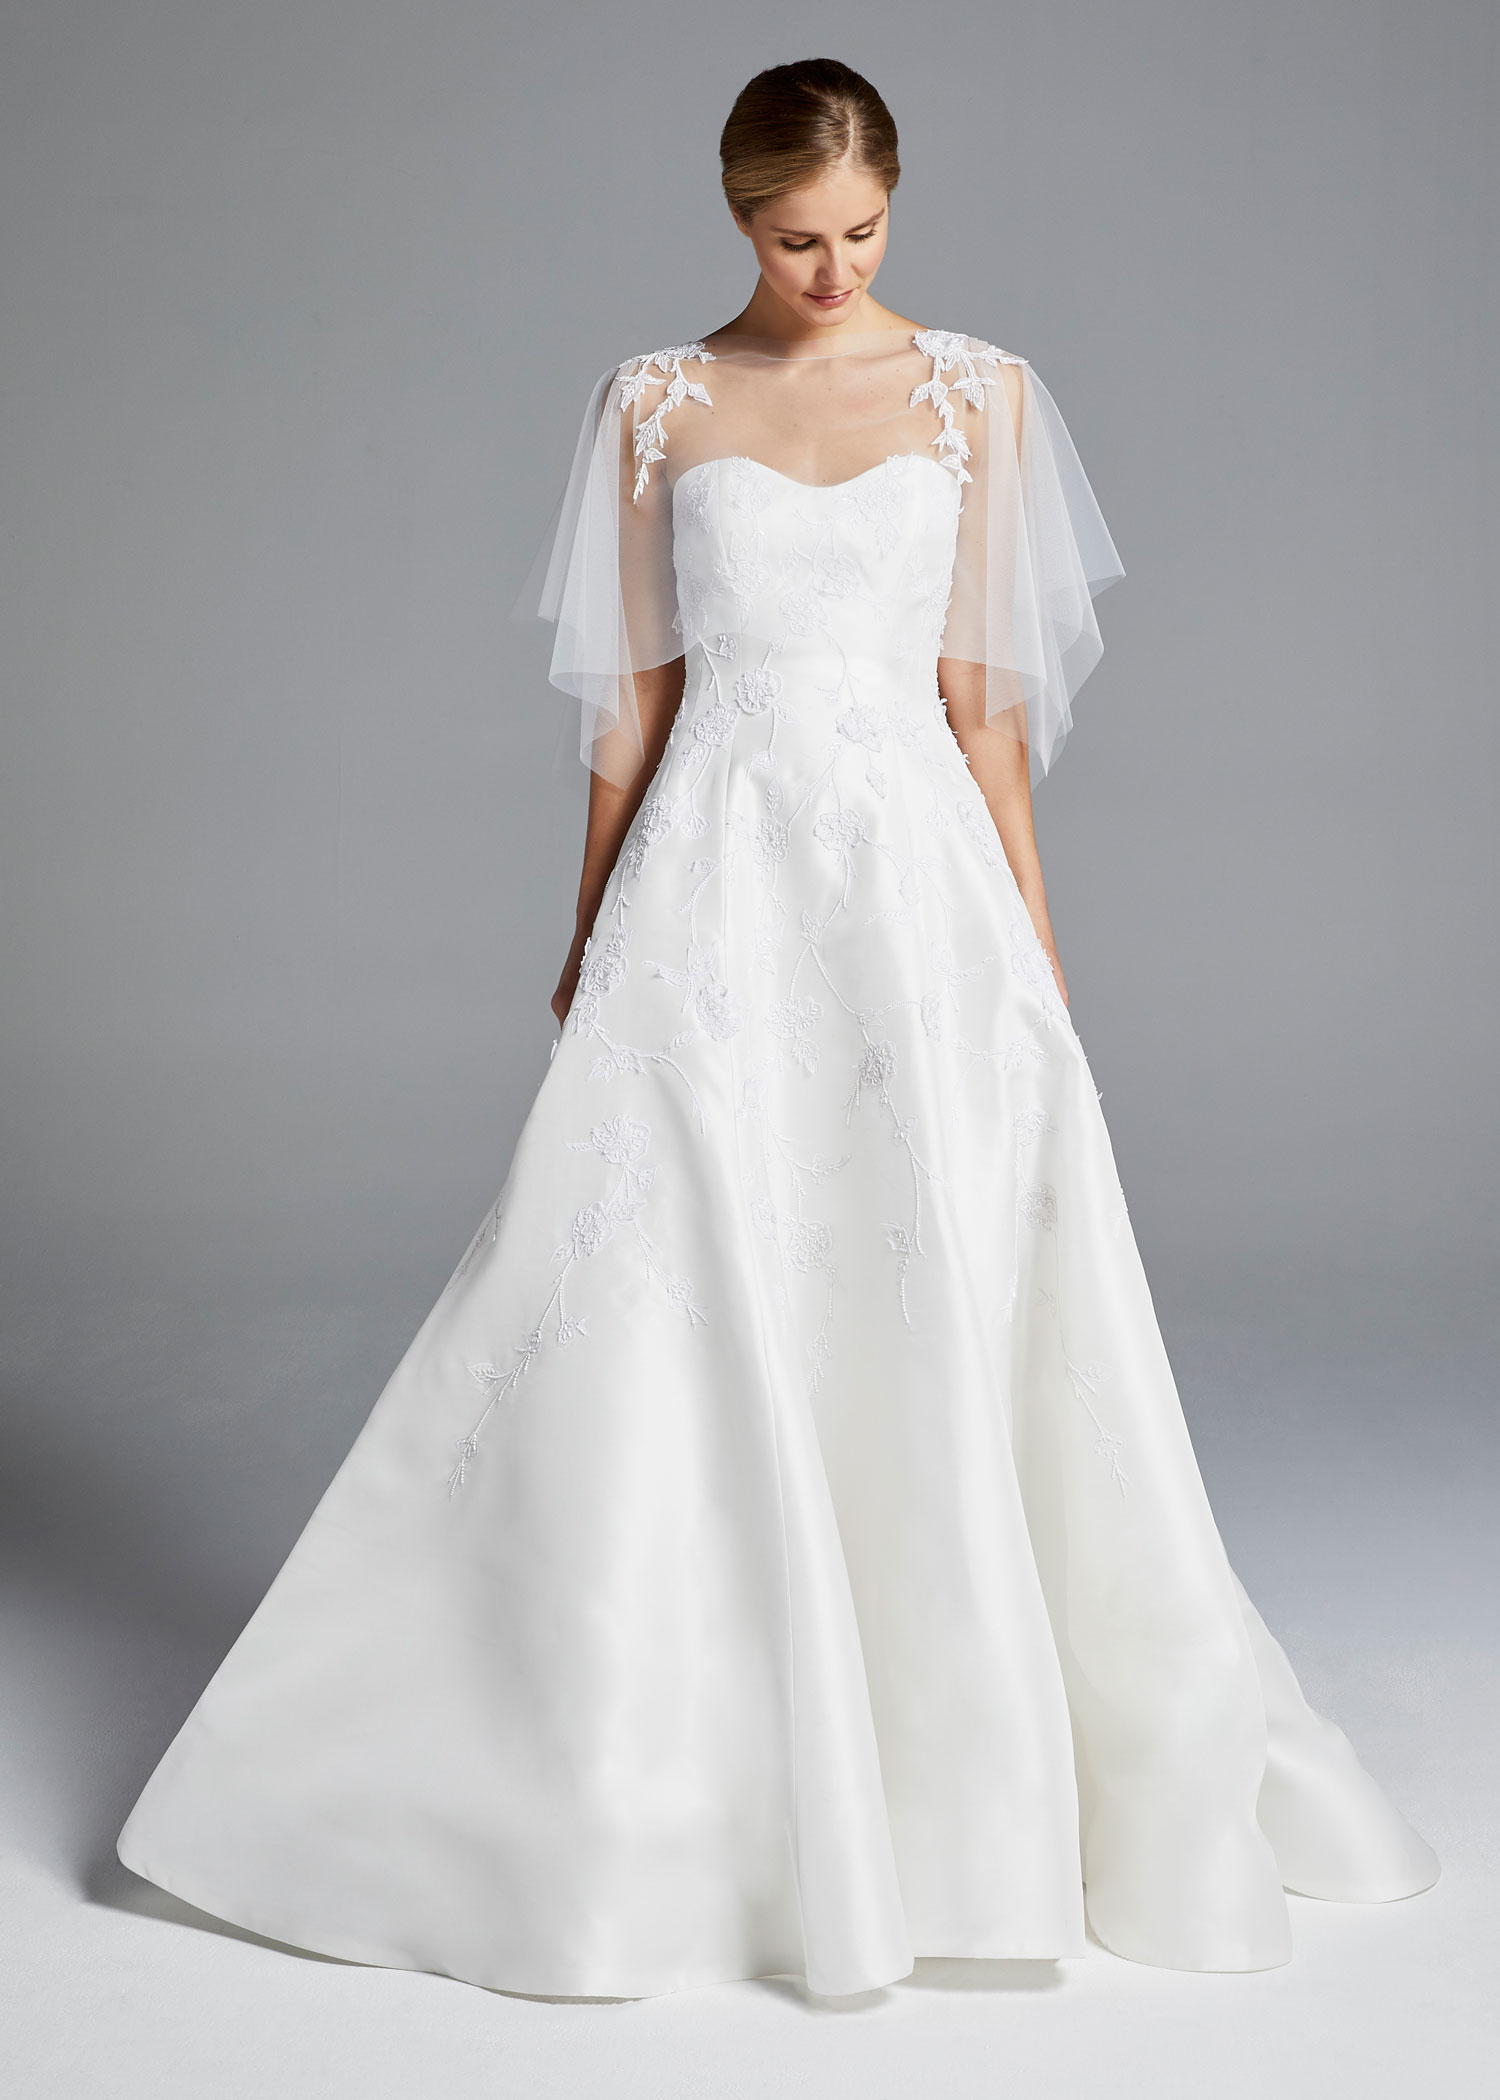 726ea44151f Anne Barge Spring 2019 collection A line gown with sweetheart neckline and  beaded embroidery